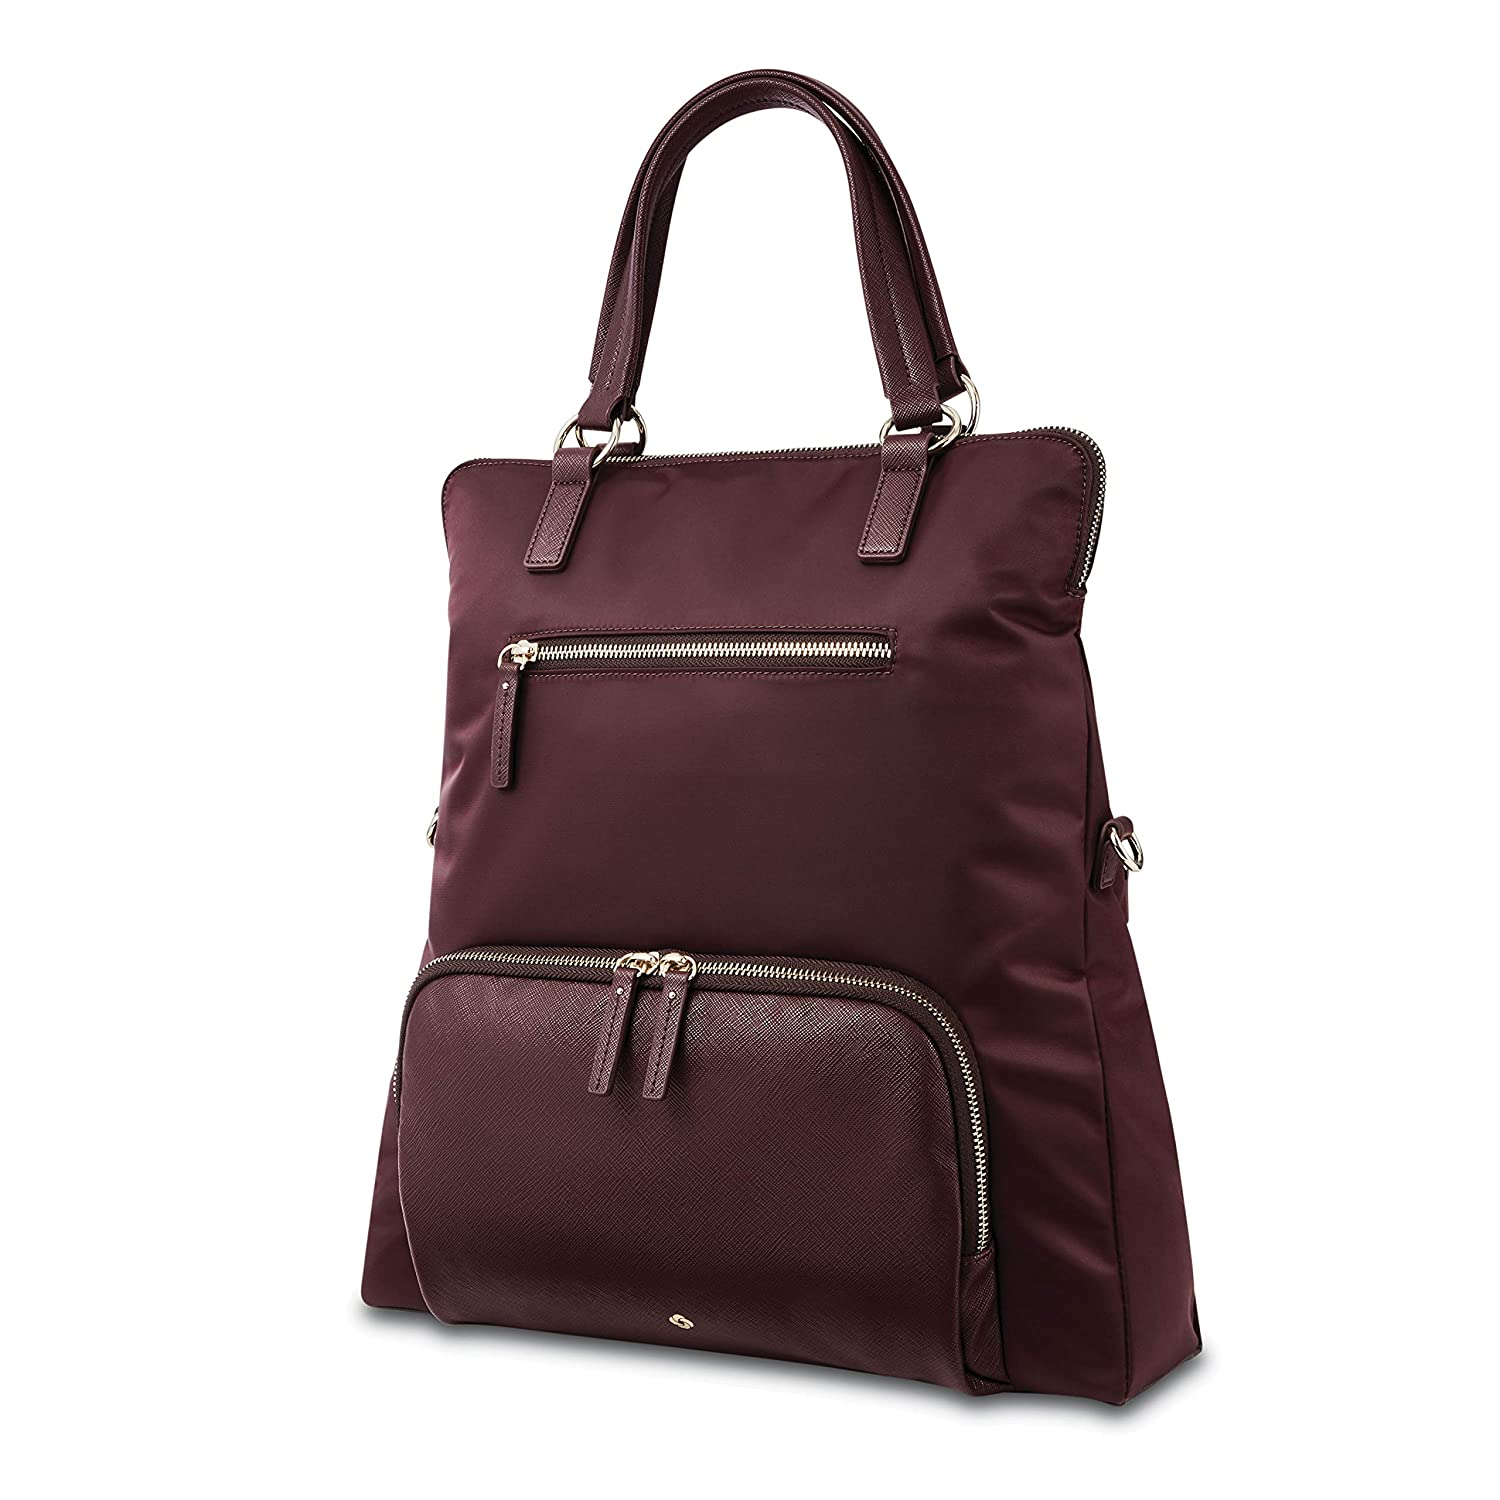 The Samsonite Encompass Womens Convertible Tote Backpack travel product recommended by Natasha Desai on Lifney.